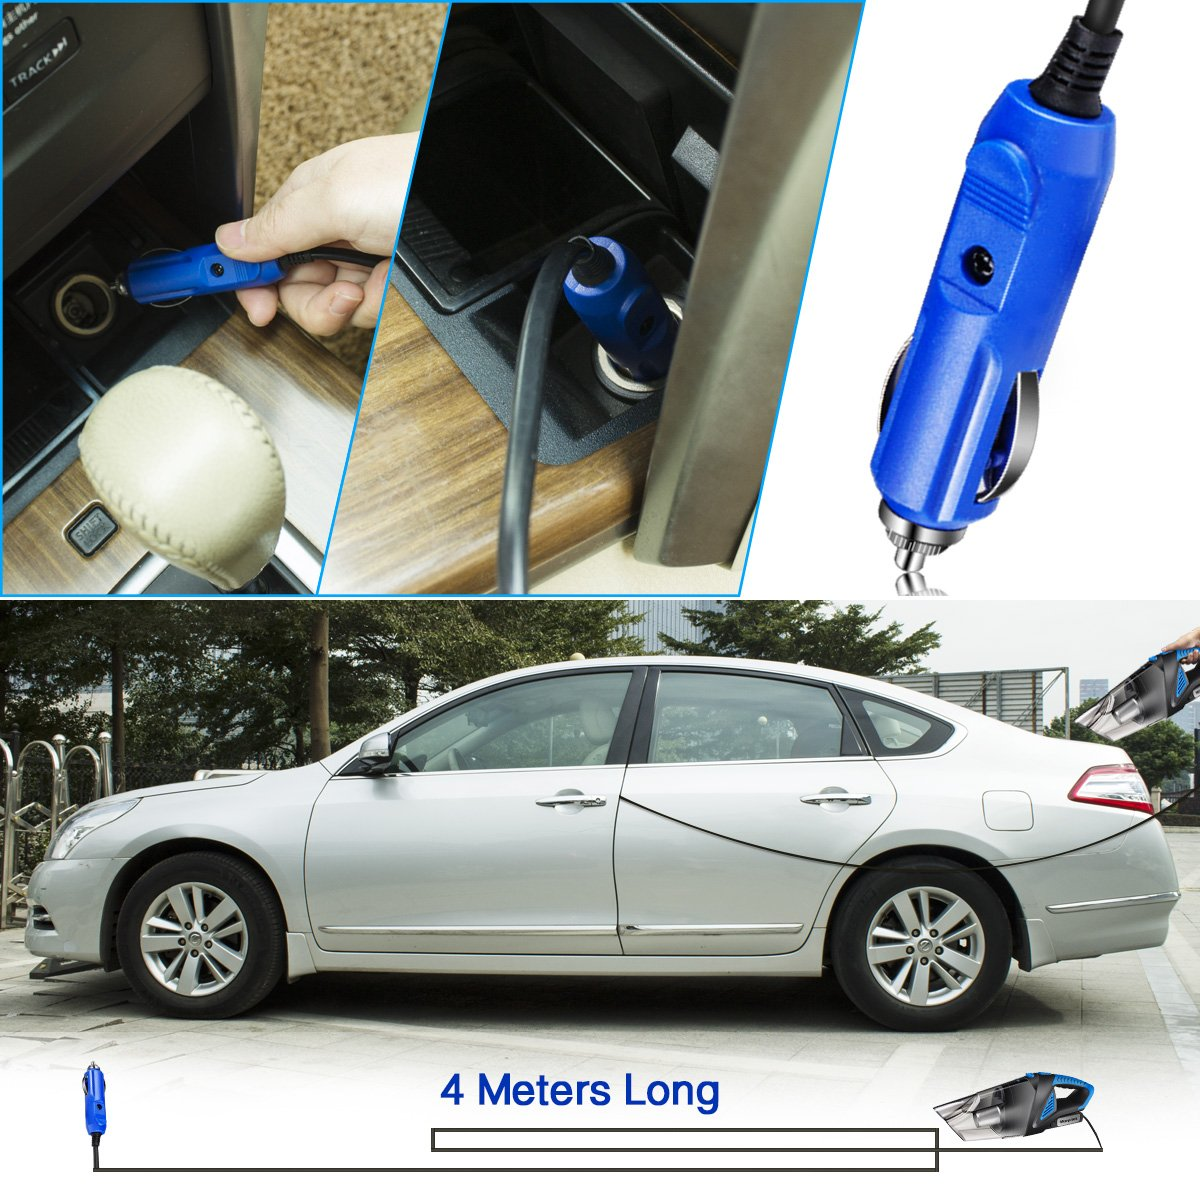 Car Vacuum Cleaner,Morpilot 5500Pa DC 12V 120W Portable Handheld Auto Vacuum Cleaner Auto Lightweight Cleaner Dustbuster Hand Vac with Stainless Steel HEPA Filter